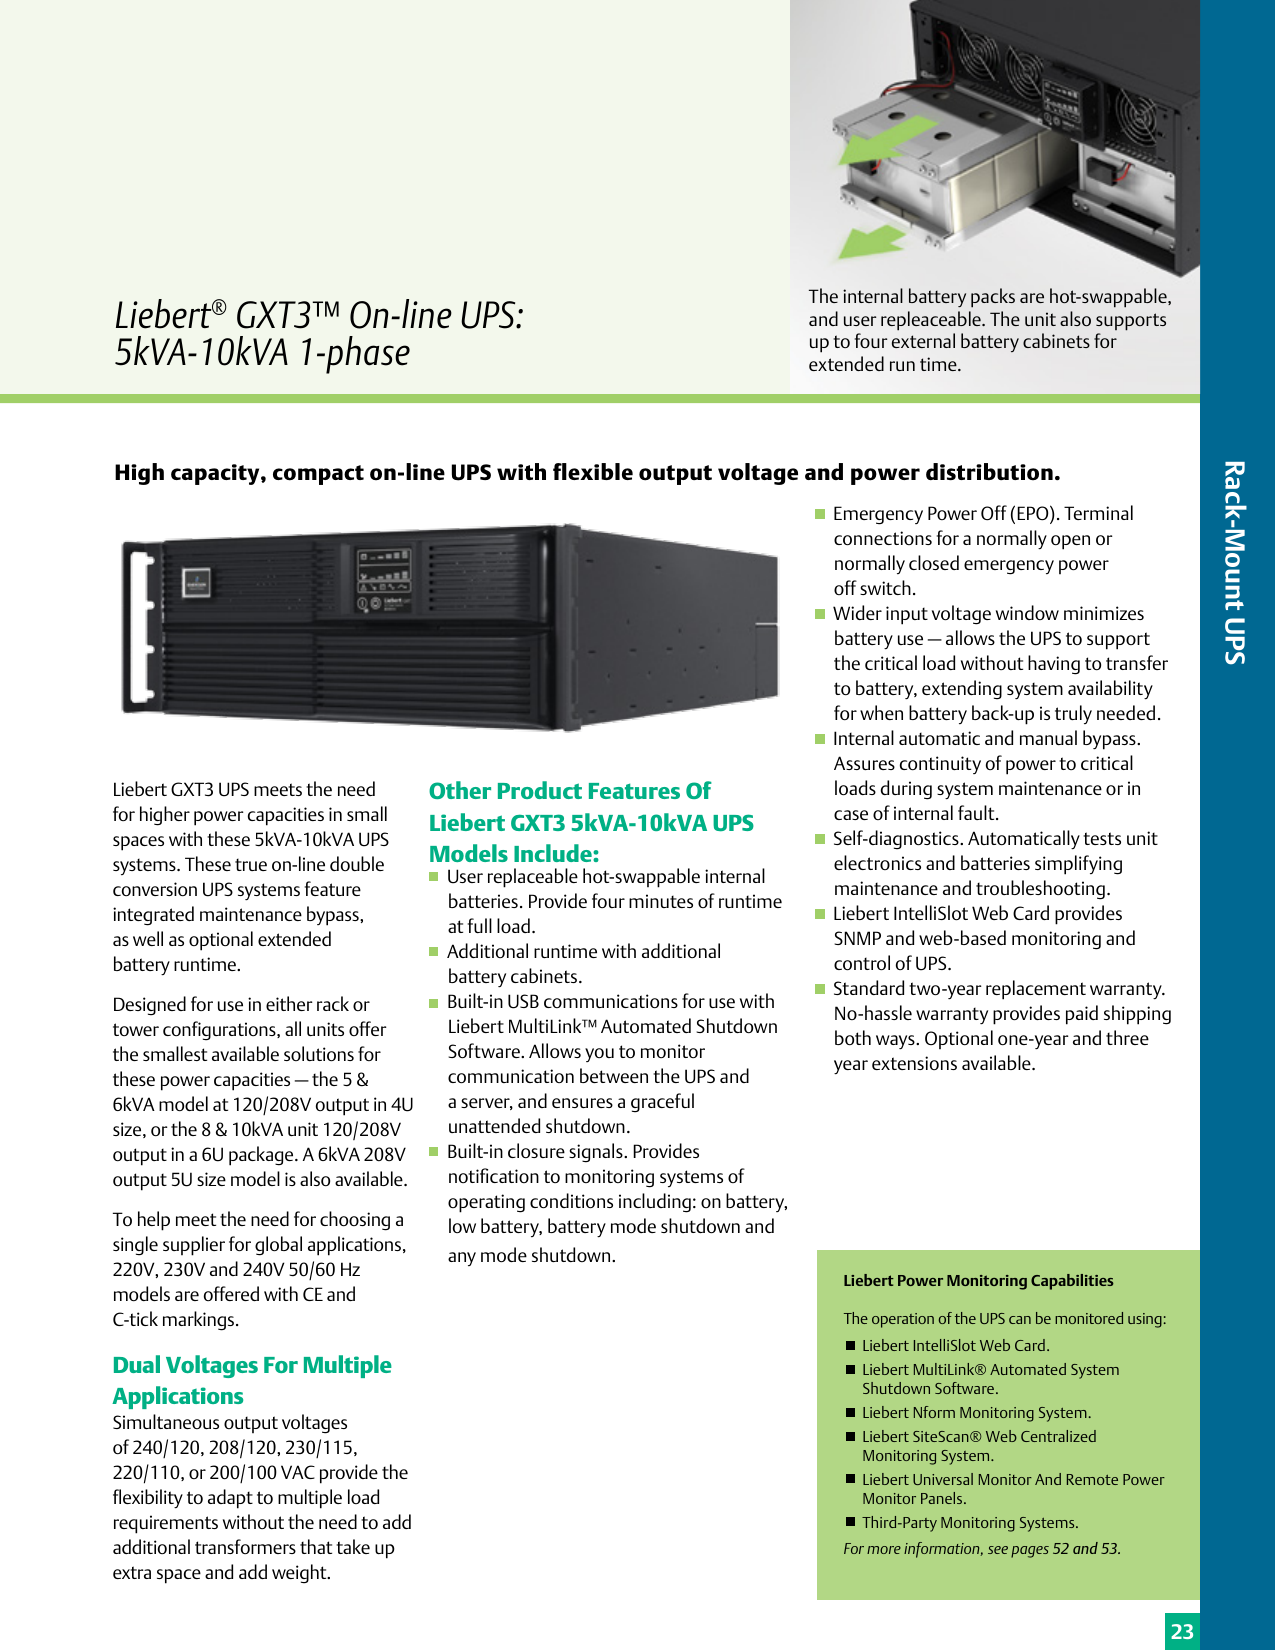 Emerson Liebert Apm On Line Ups 15 90Kw Brochures And Data Sheets